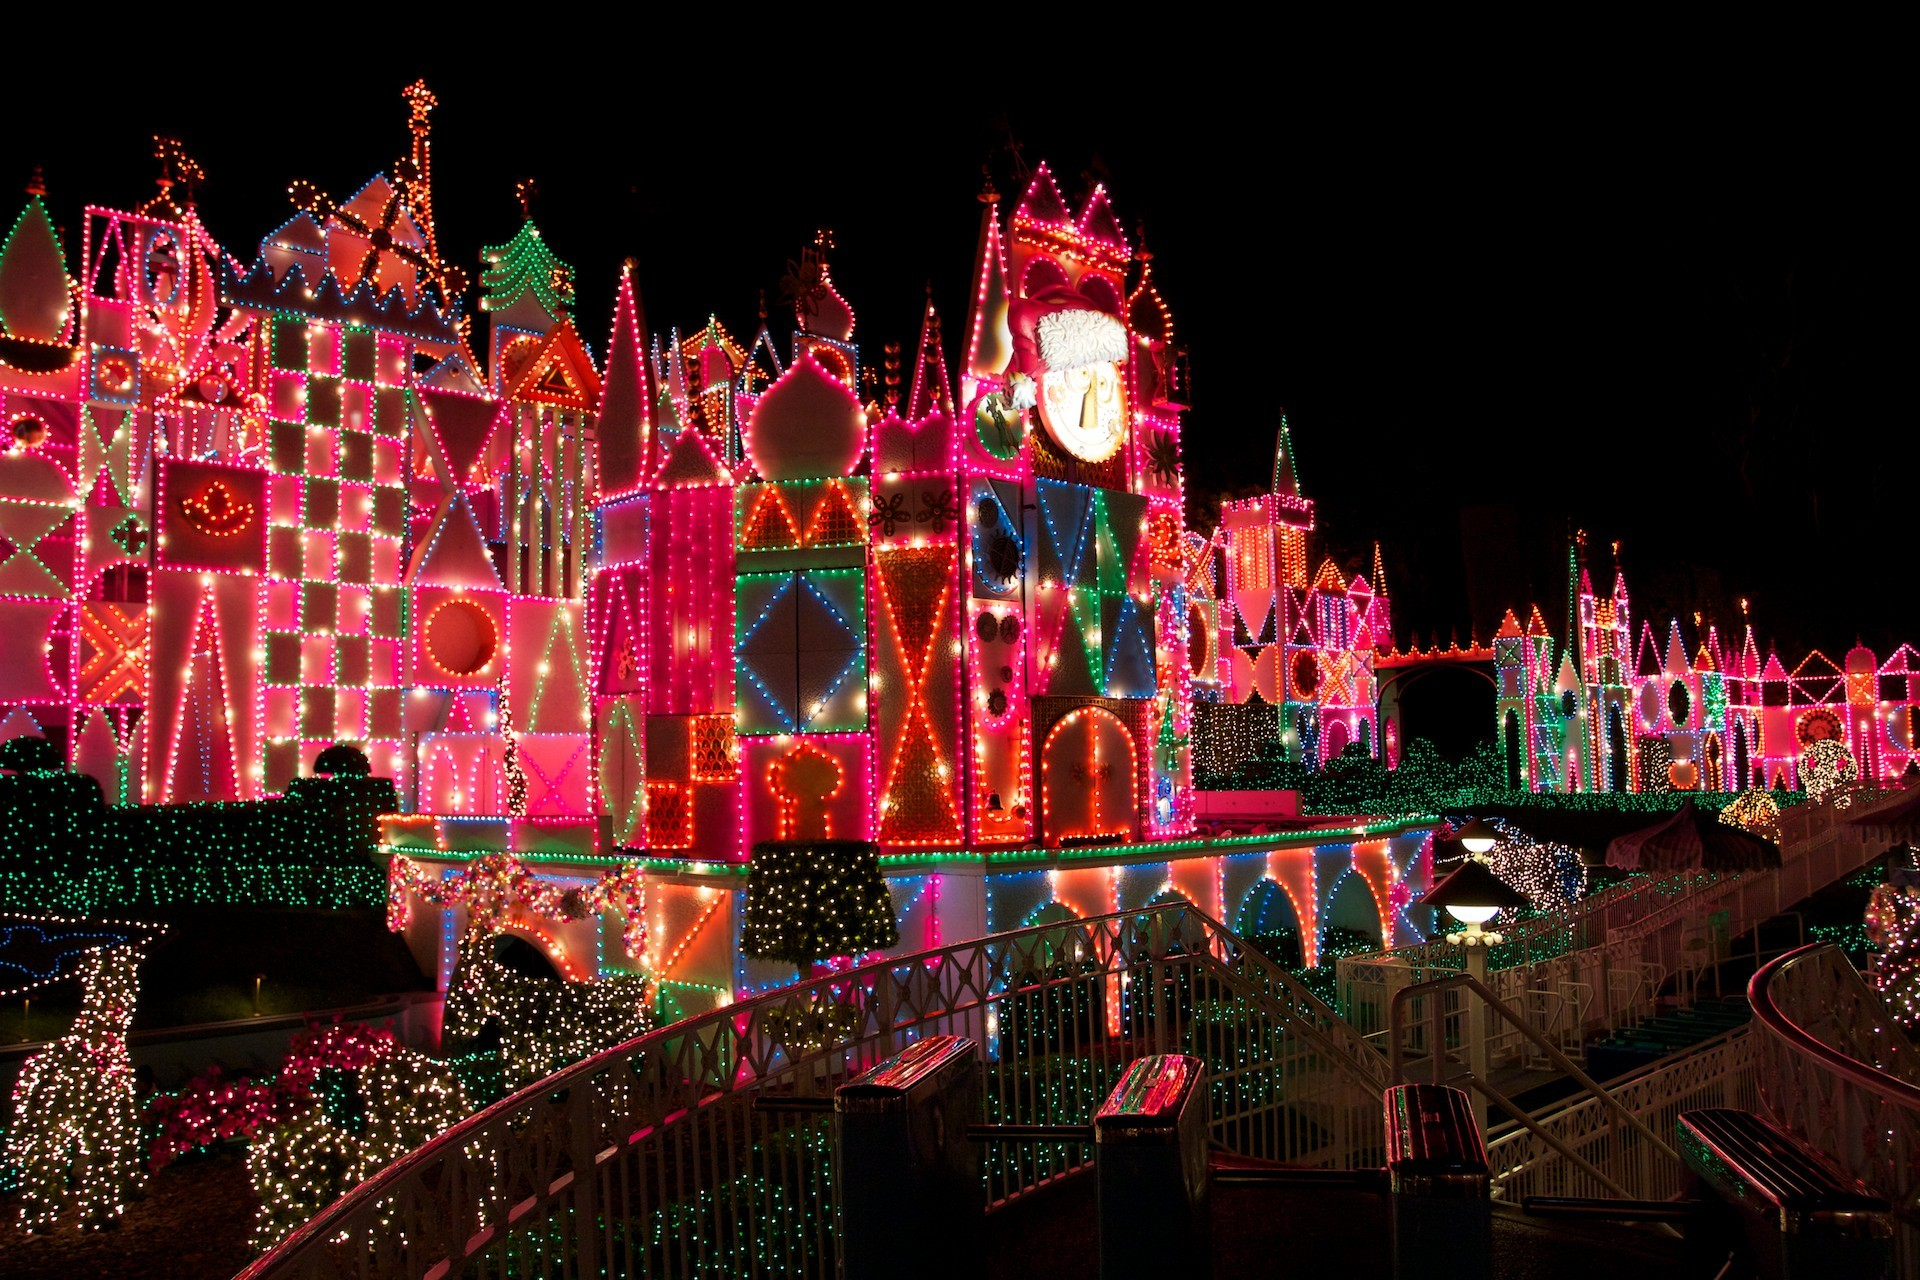 1920x1280 Its A Small World Attraction At Disneyland Night Decorated For Christmas Wallpaper